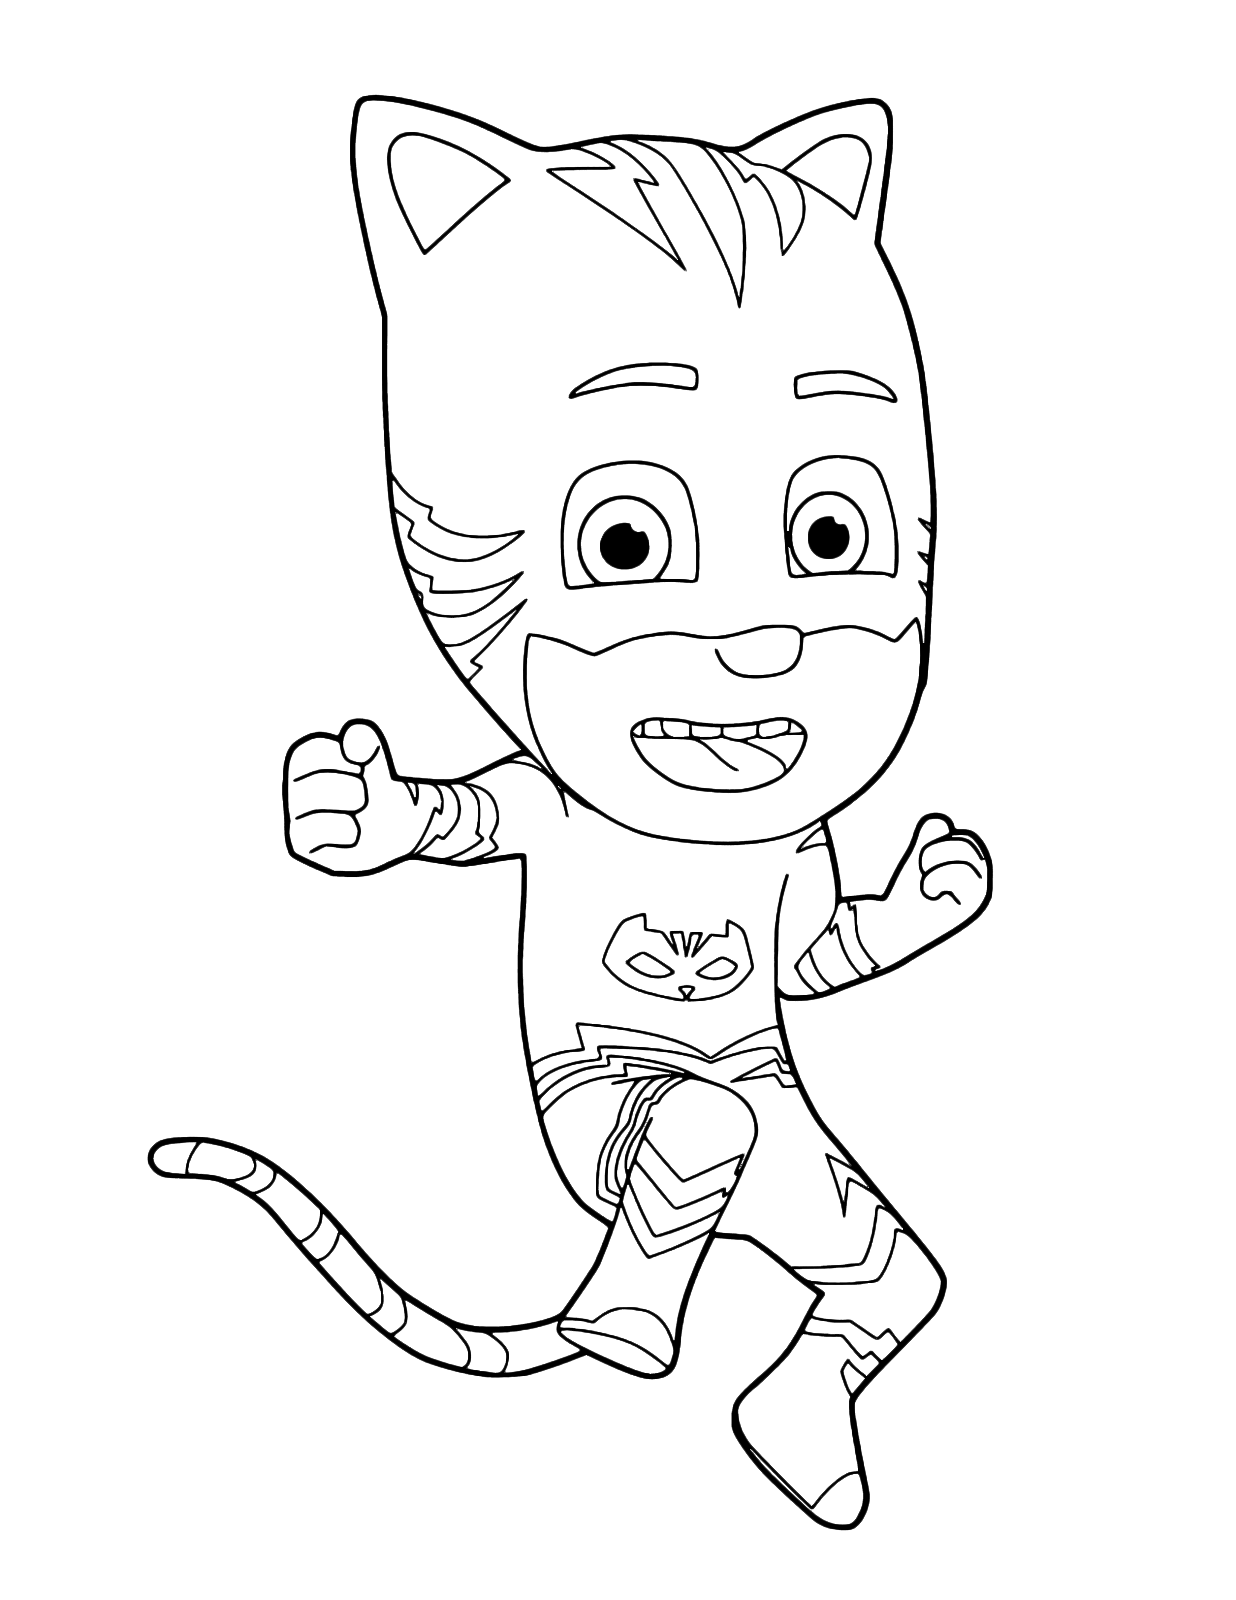 Pj masks super pigiamini gattoboy pronto all 39 azione for Pj masks disegni da colorare